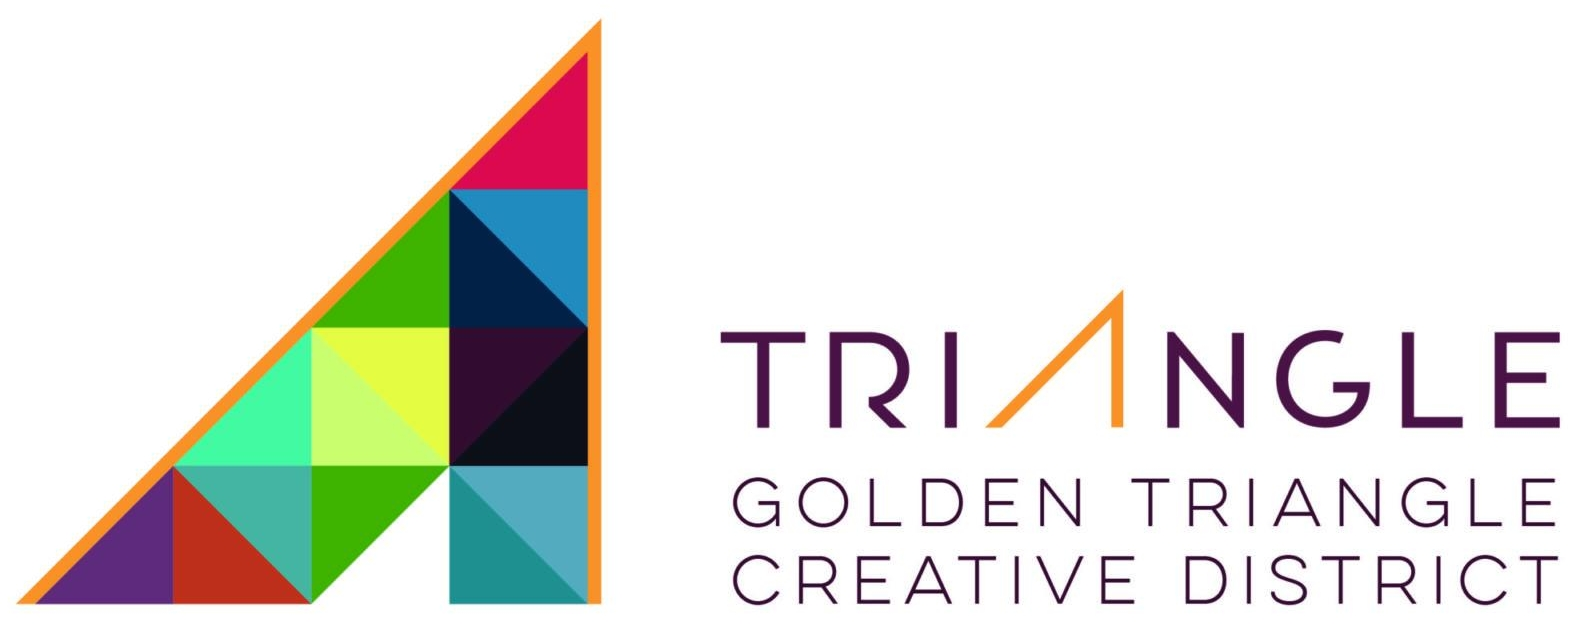 Golden Triangle Creative District